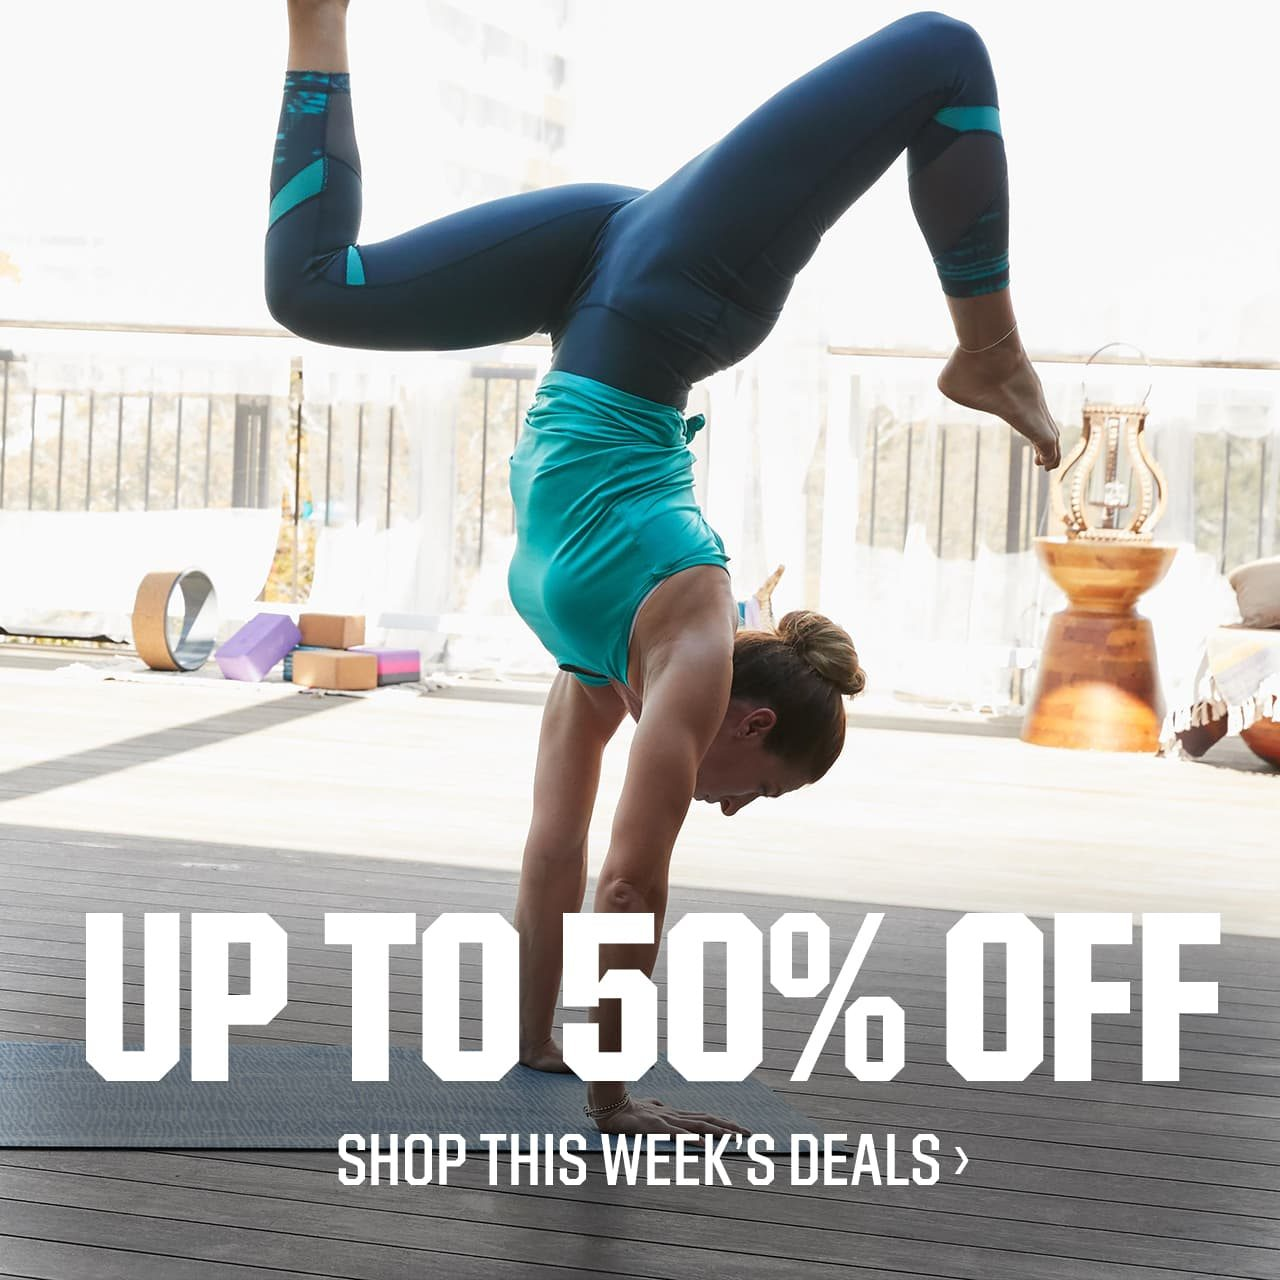 UP TO 50% OFF | SHOP THIS WEEK'S DEALS >